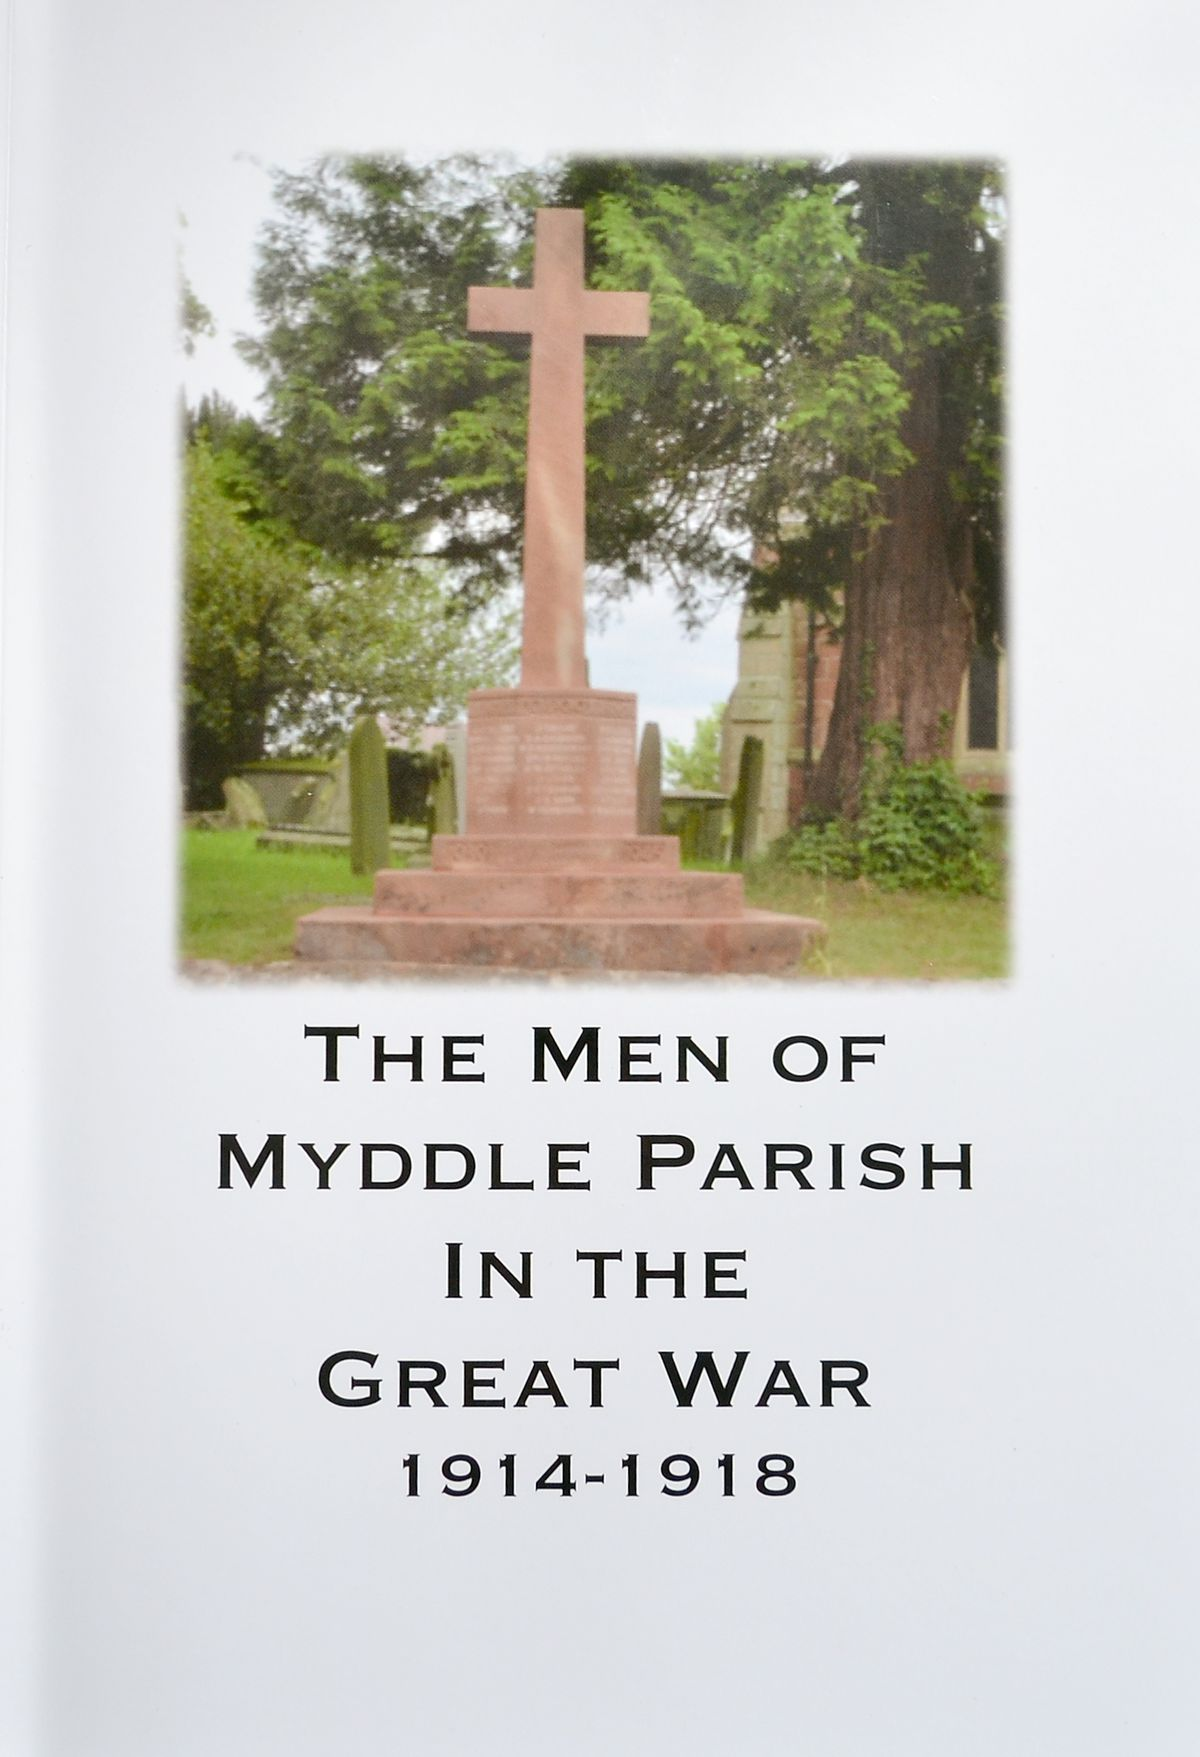 The new book honouring the heroes of Myddle parish.